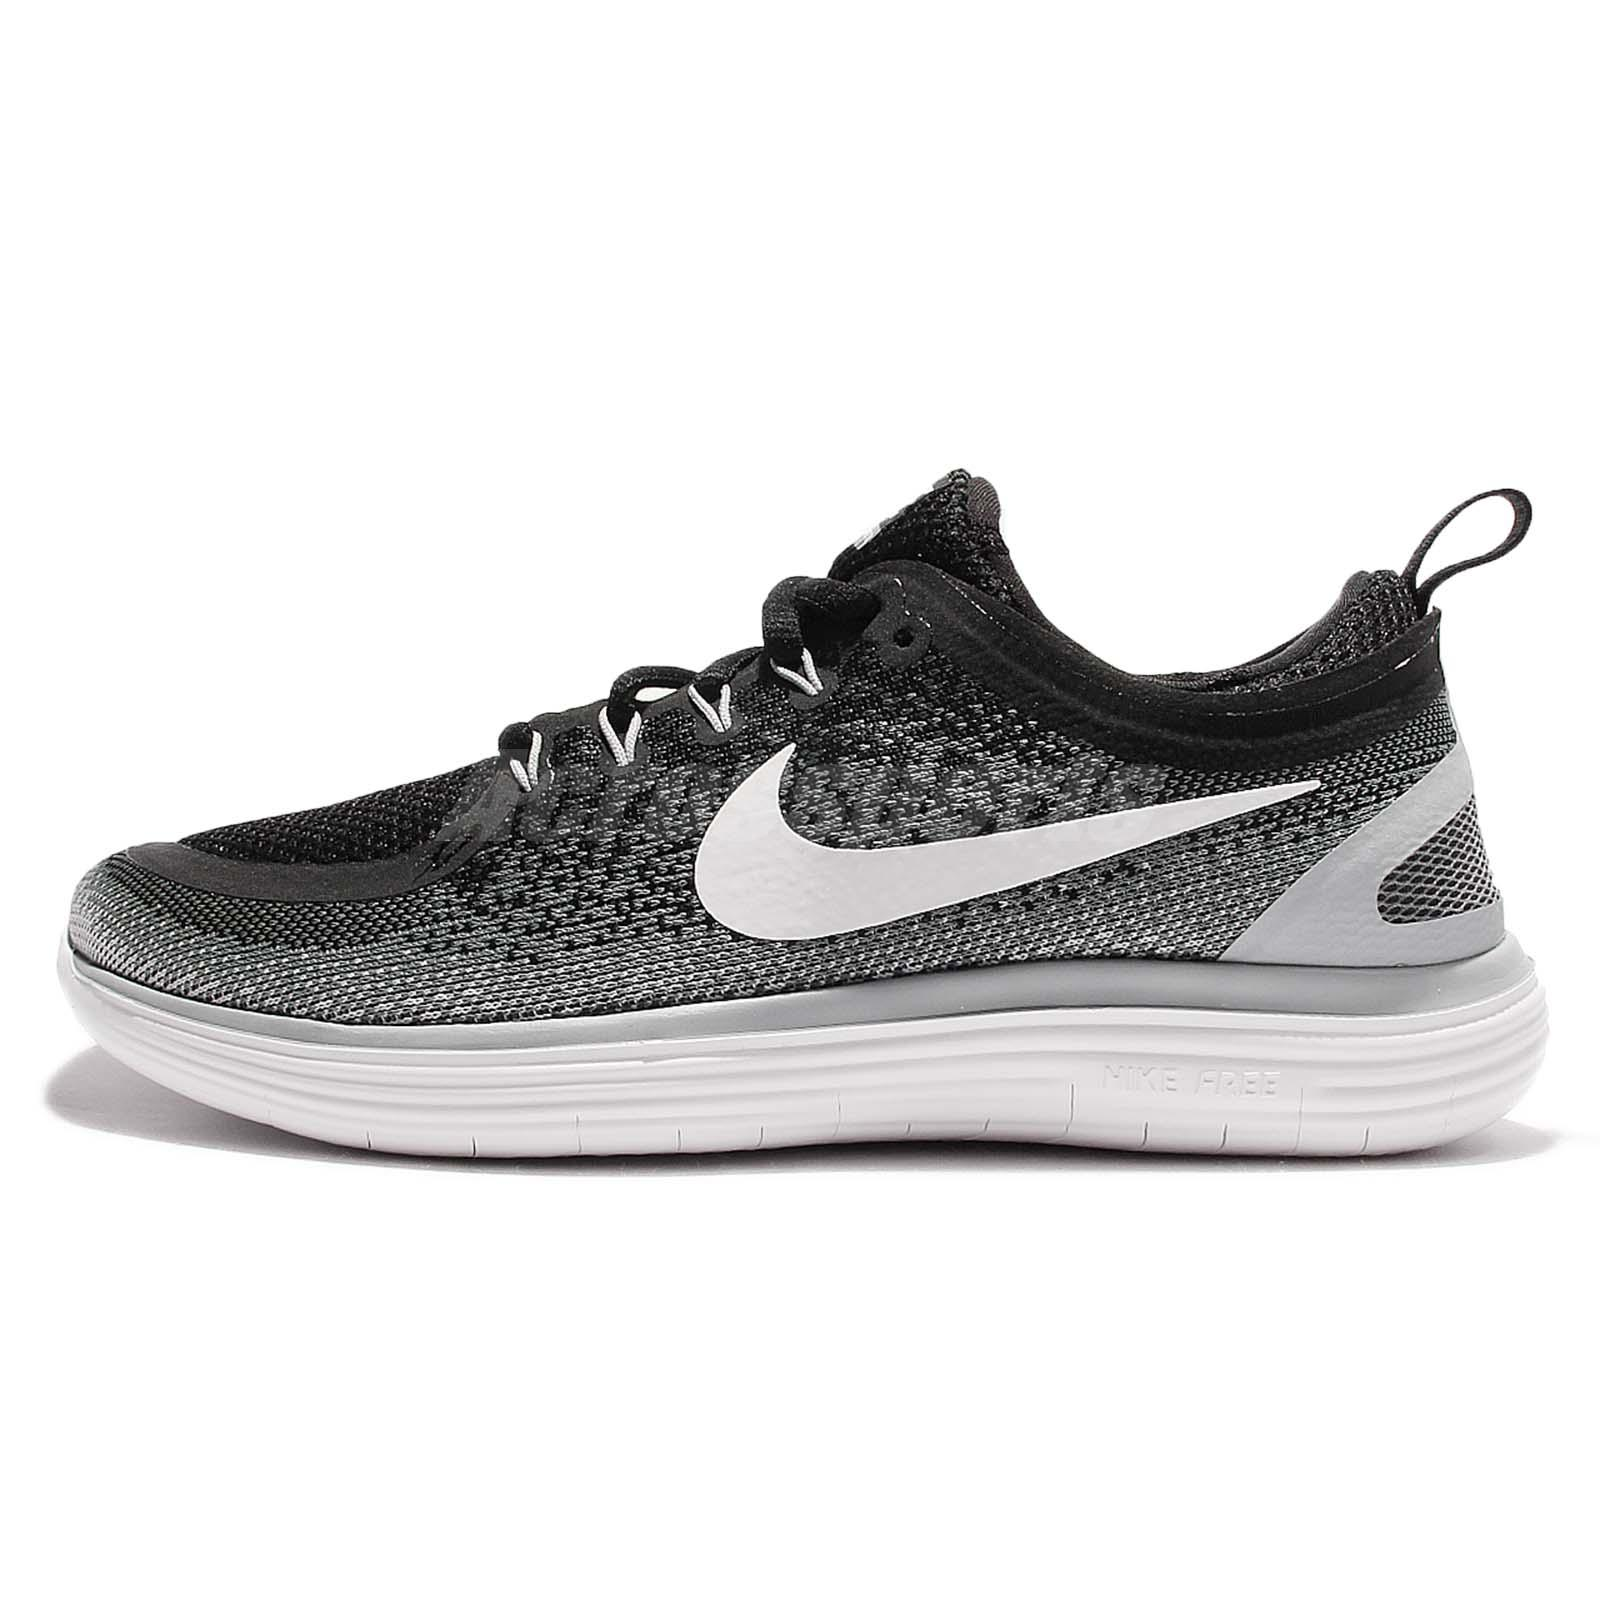 0a7df188cea2 Wmns Nike Free RN Distance 2 Run Black White Women Running Shoes 863776-001